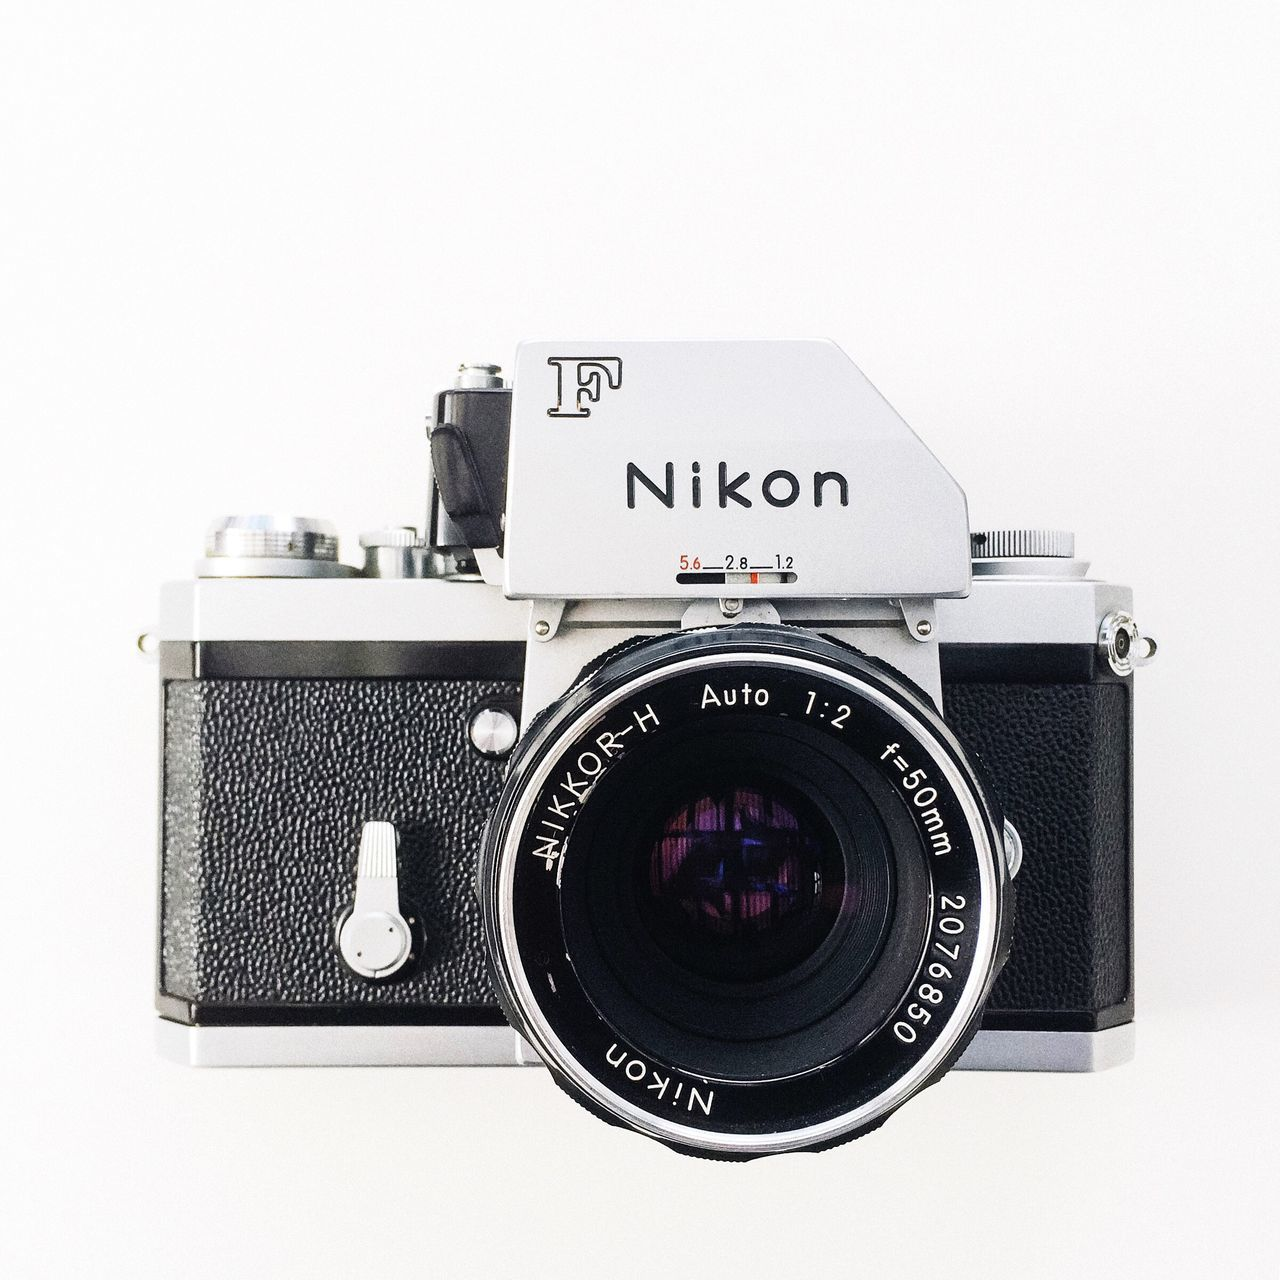 Classic Nikon f 35mm film camera 1968 Nikon F Classic Photomic Ftn 35mm Film Camera Iconic Design Real Film Vintage Photography